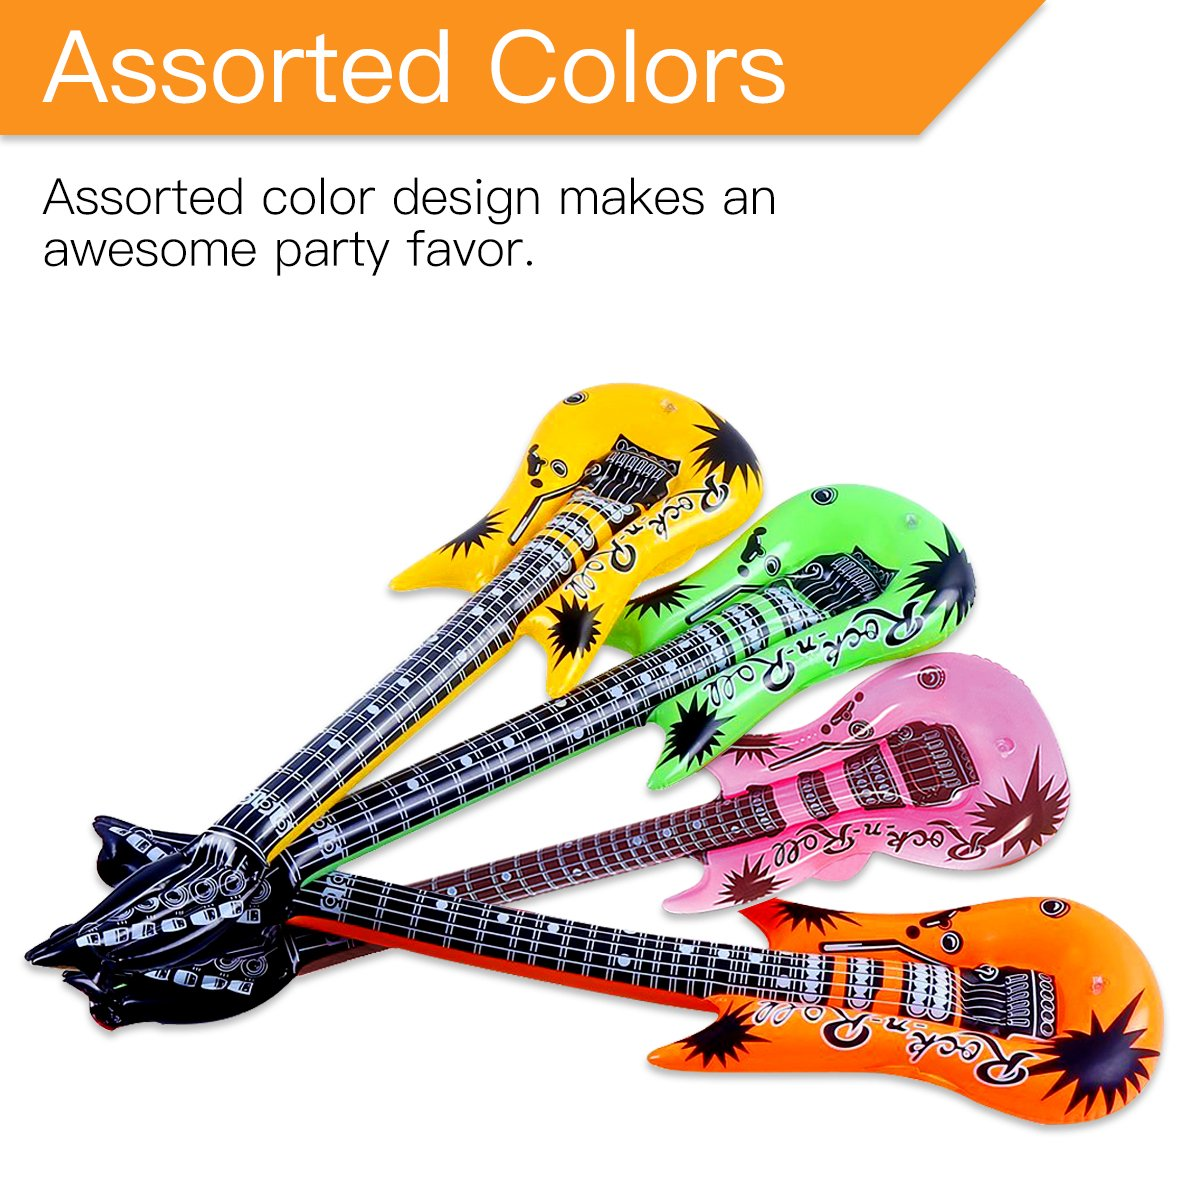 Novelty Place Inflatable Guitar Set for Kids & Adults, 35 Inches (Pack of 12) by Novelty Place (Image #3)